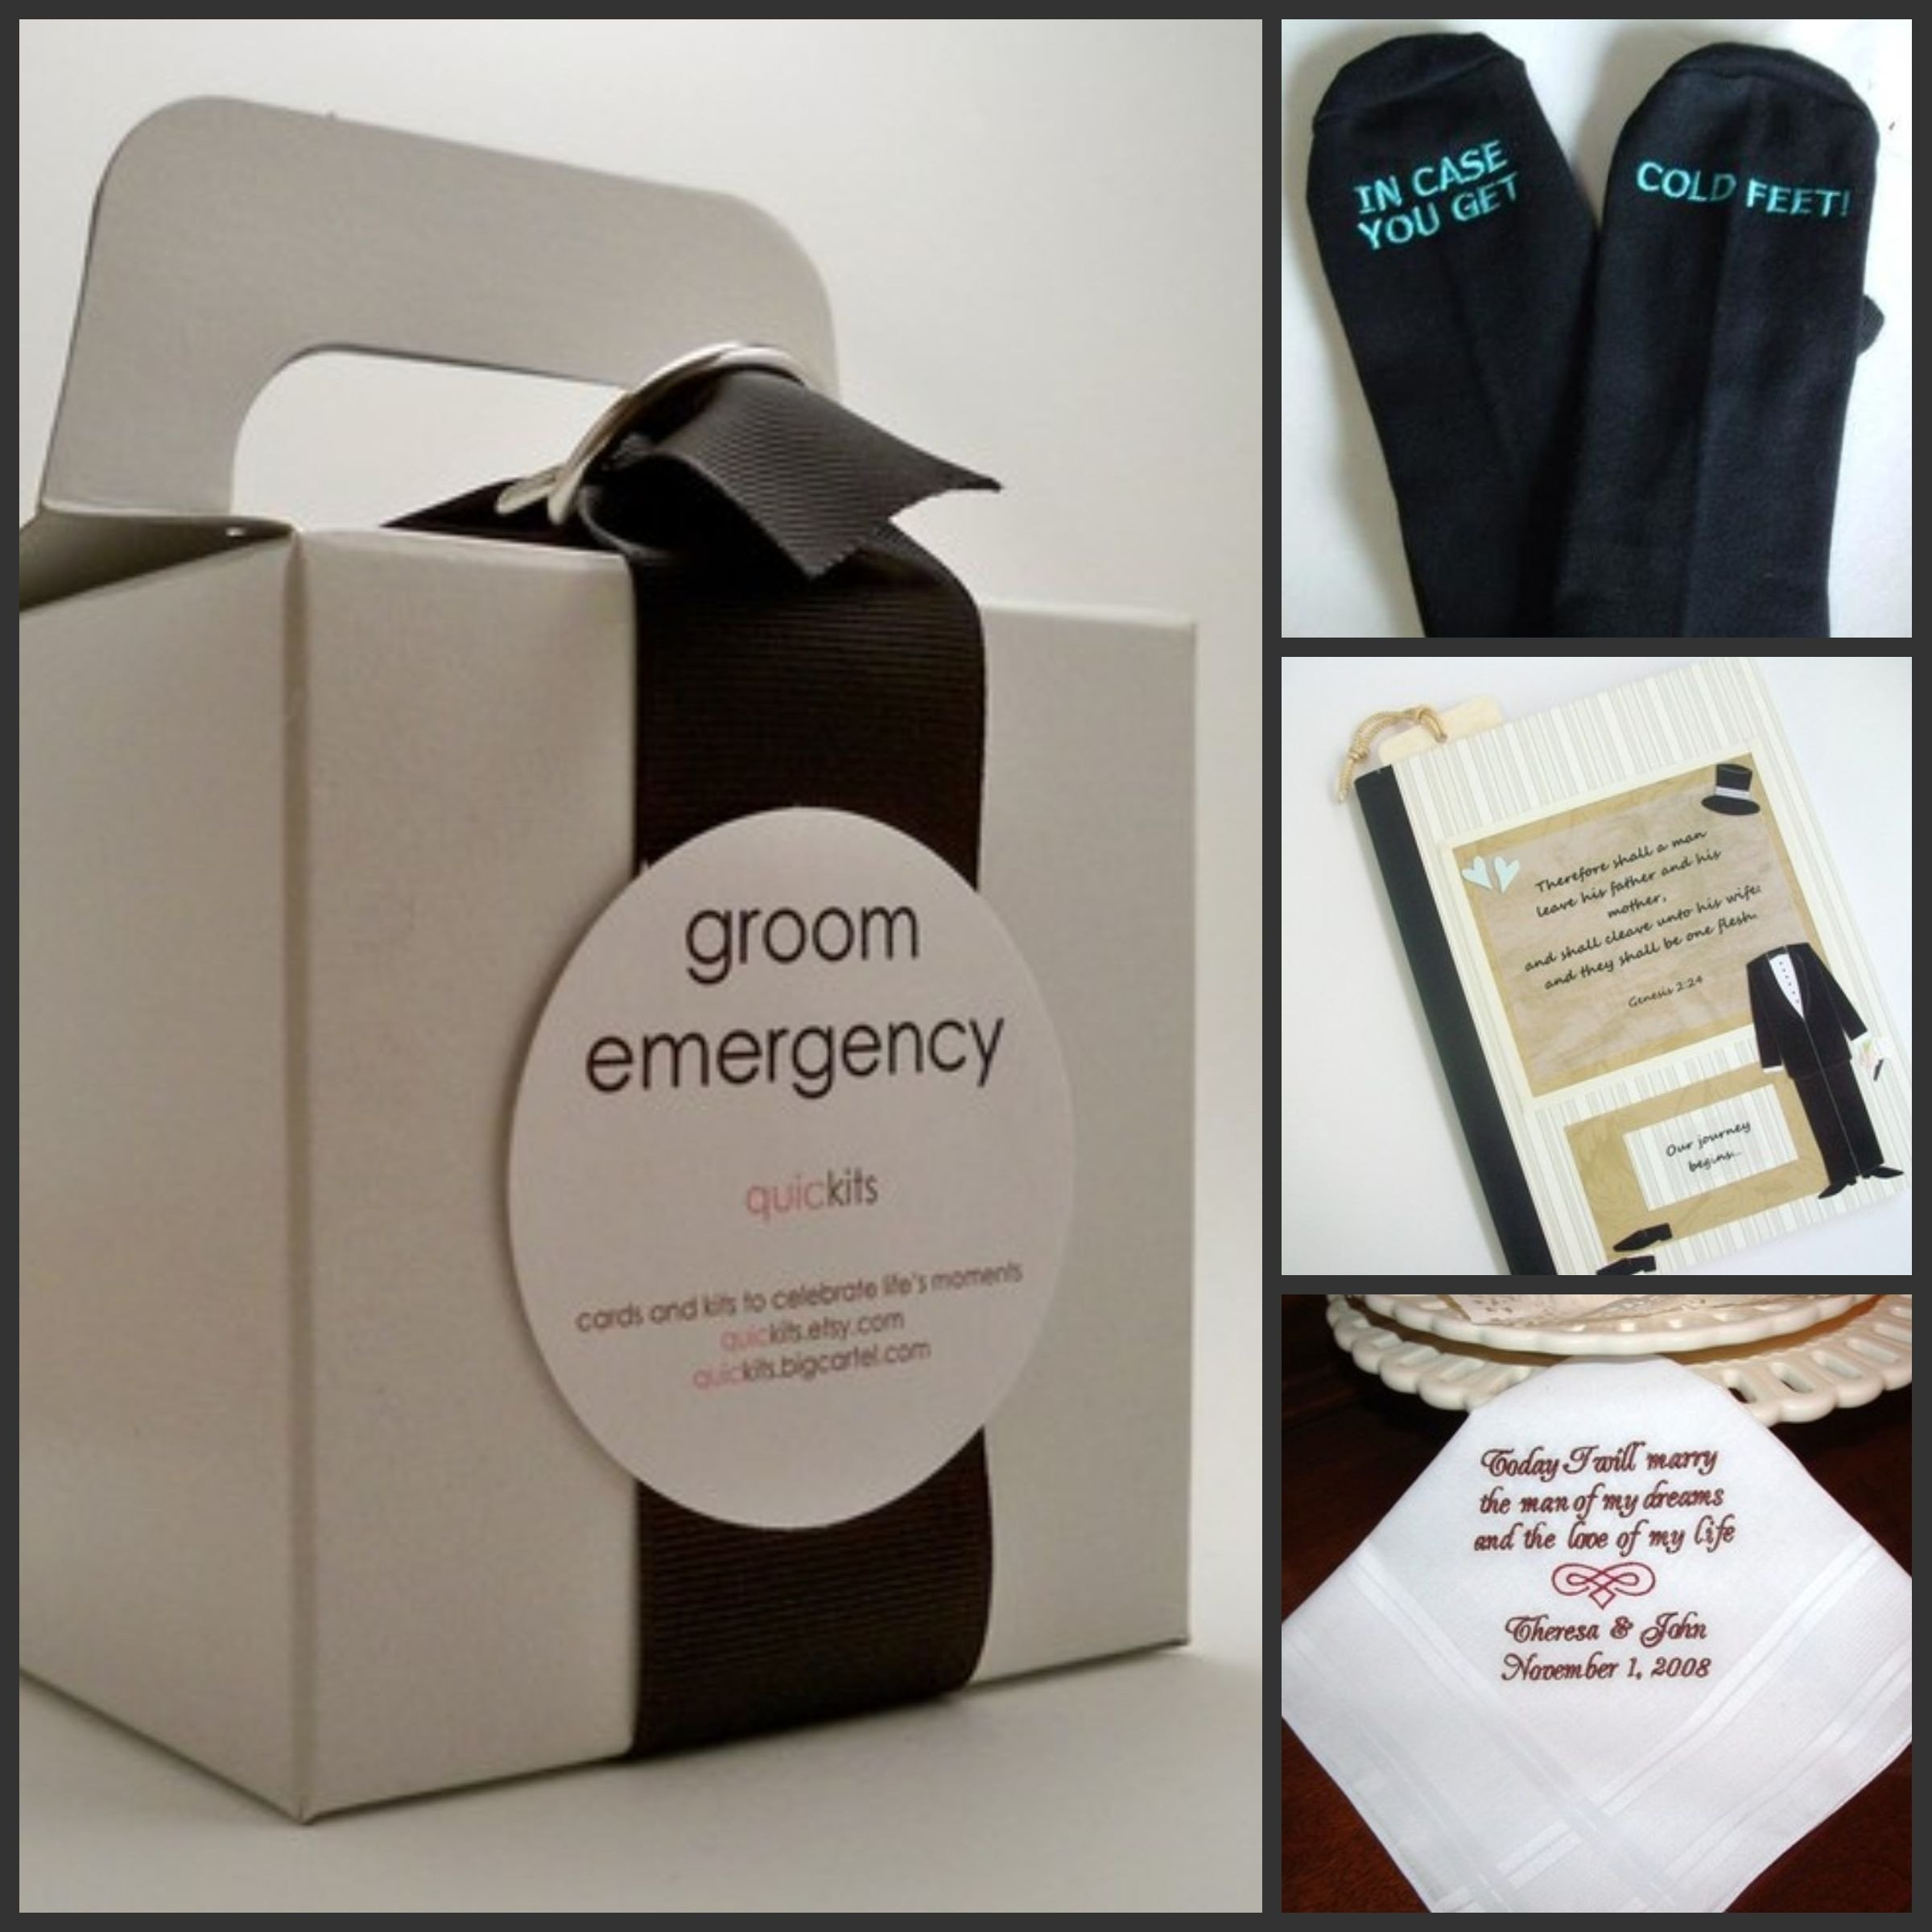 wedding gift from groom to bride - wedding ideas | wedding gifts for